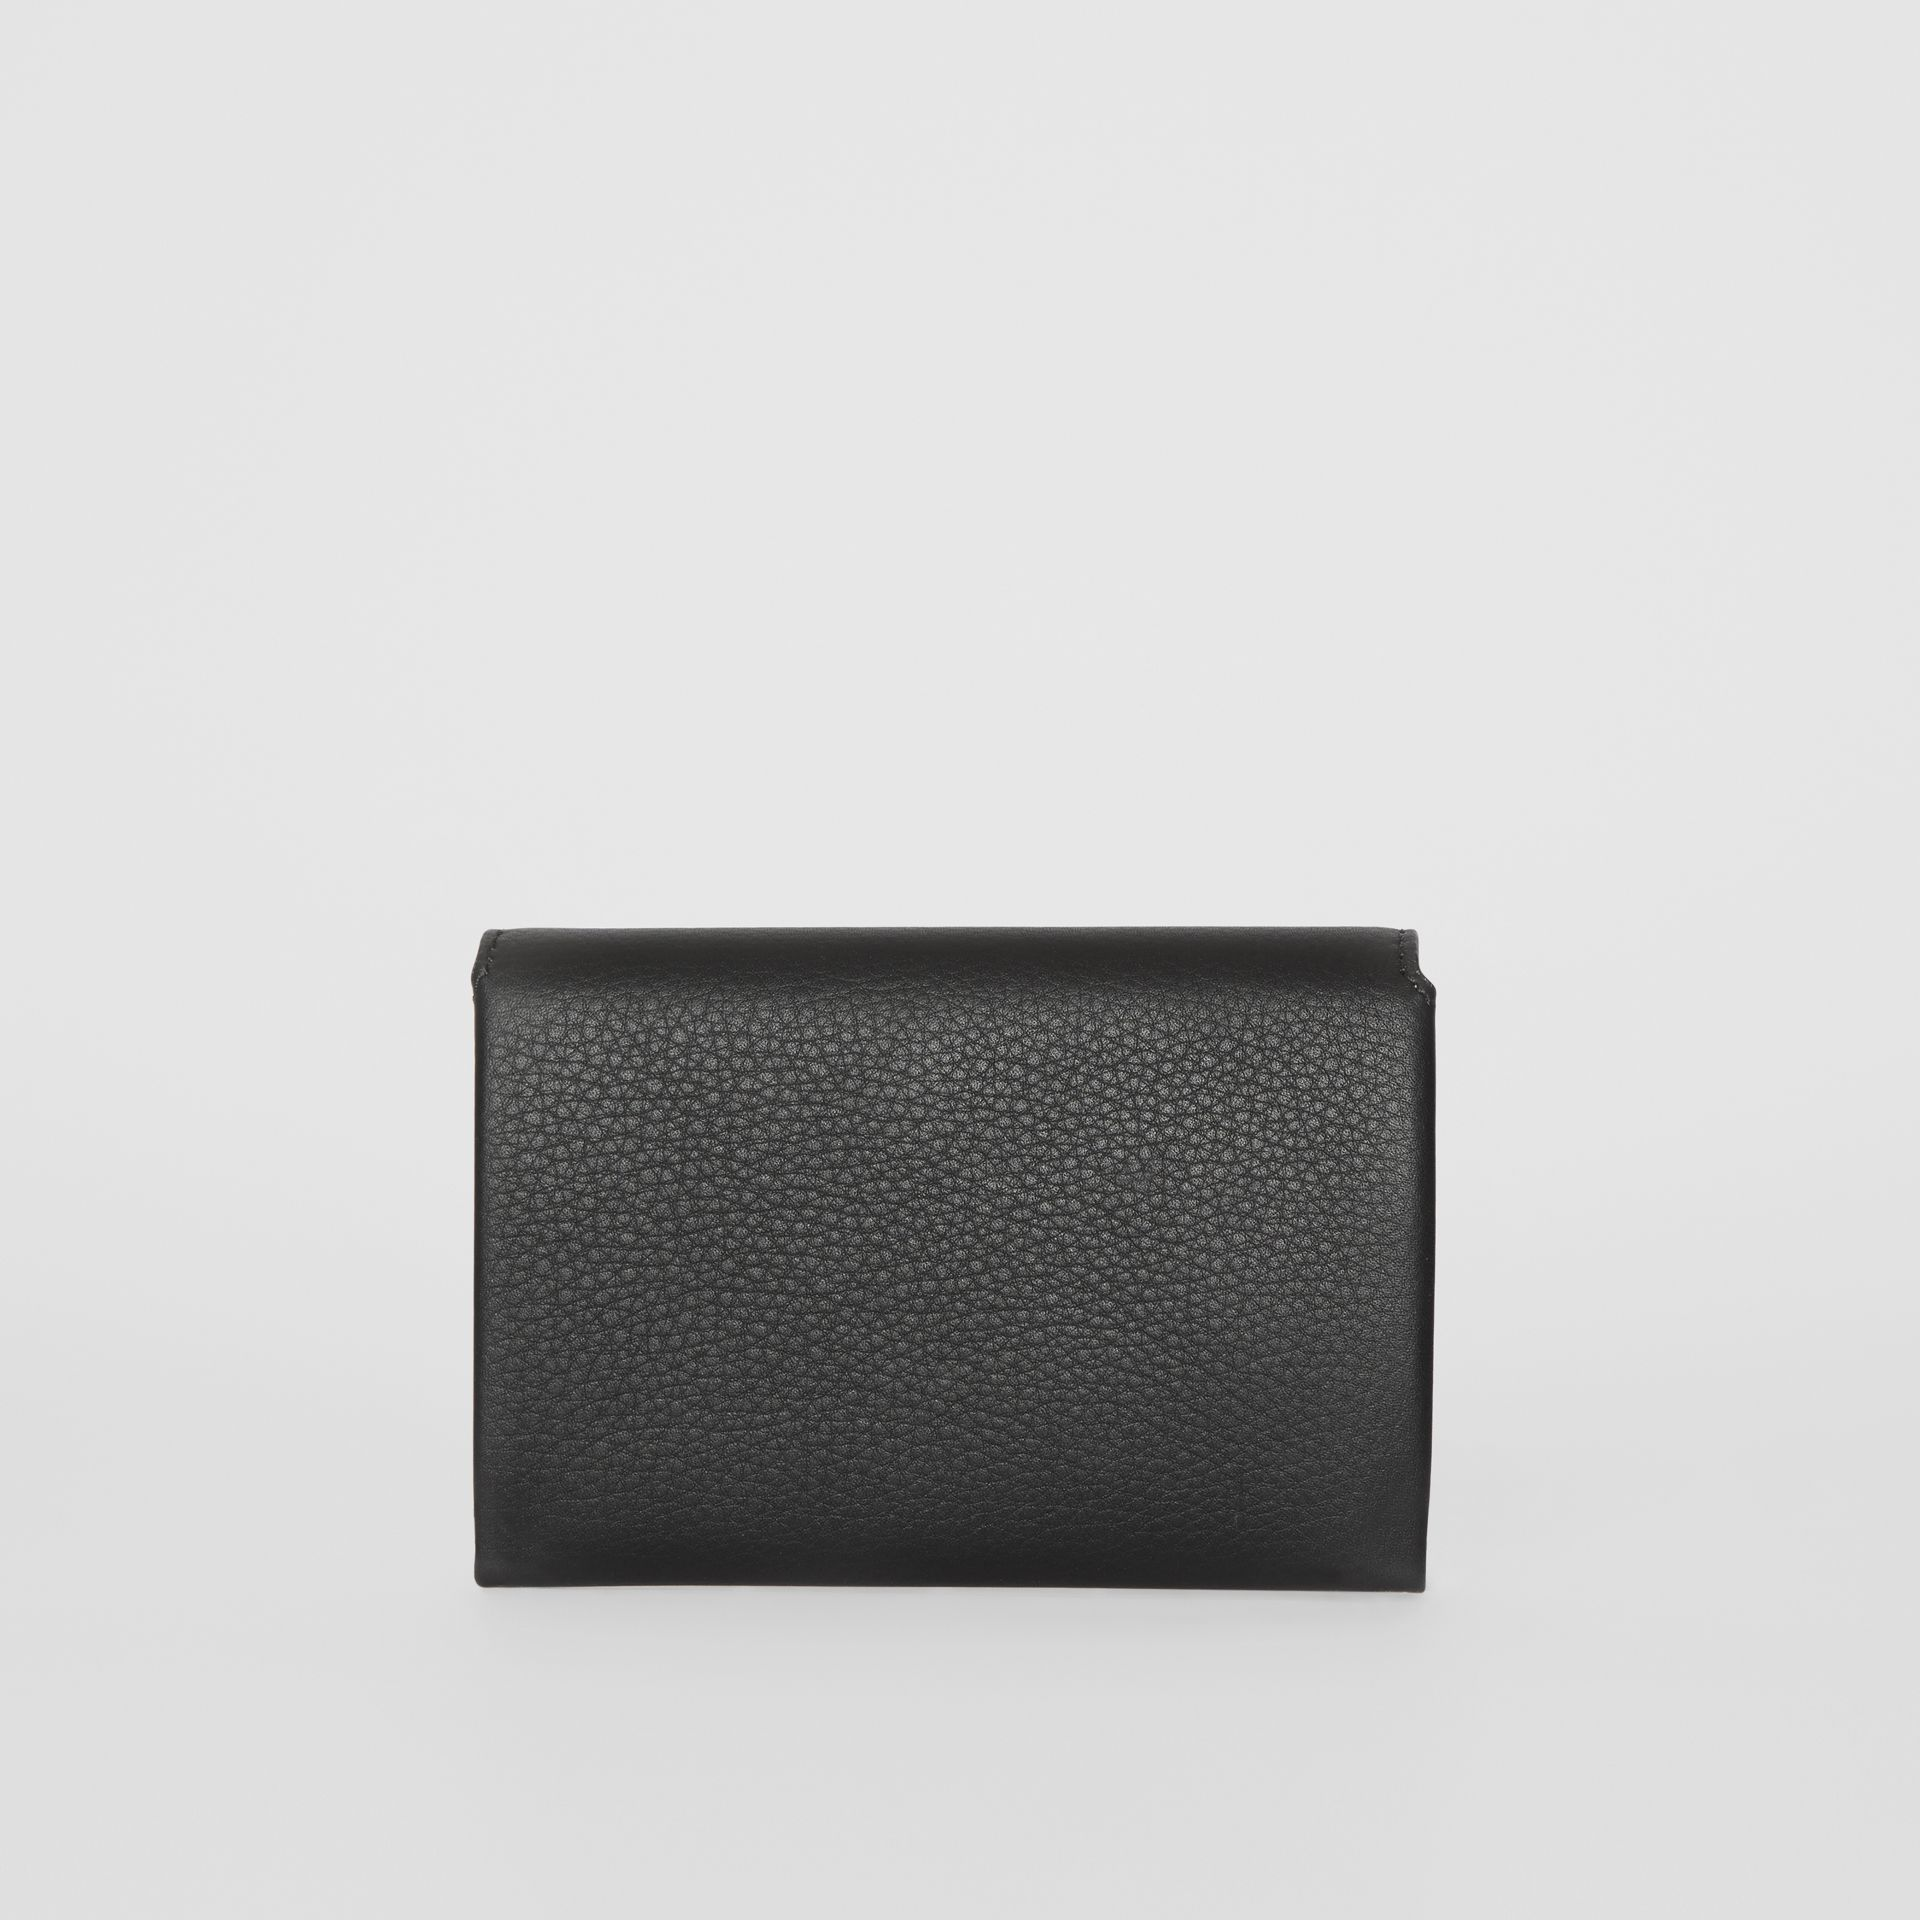 Triple Stud Leather Folding Wallet in Black - Women | Burberry Hong Kong S.A.R - gallery image 5